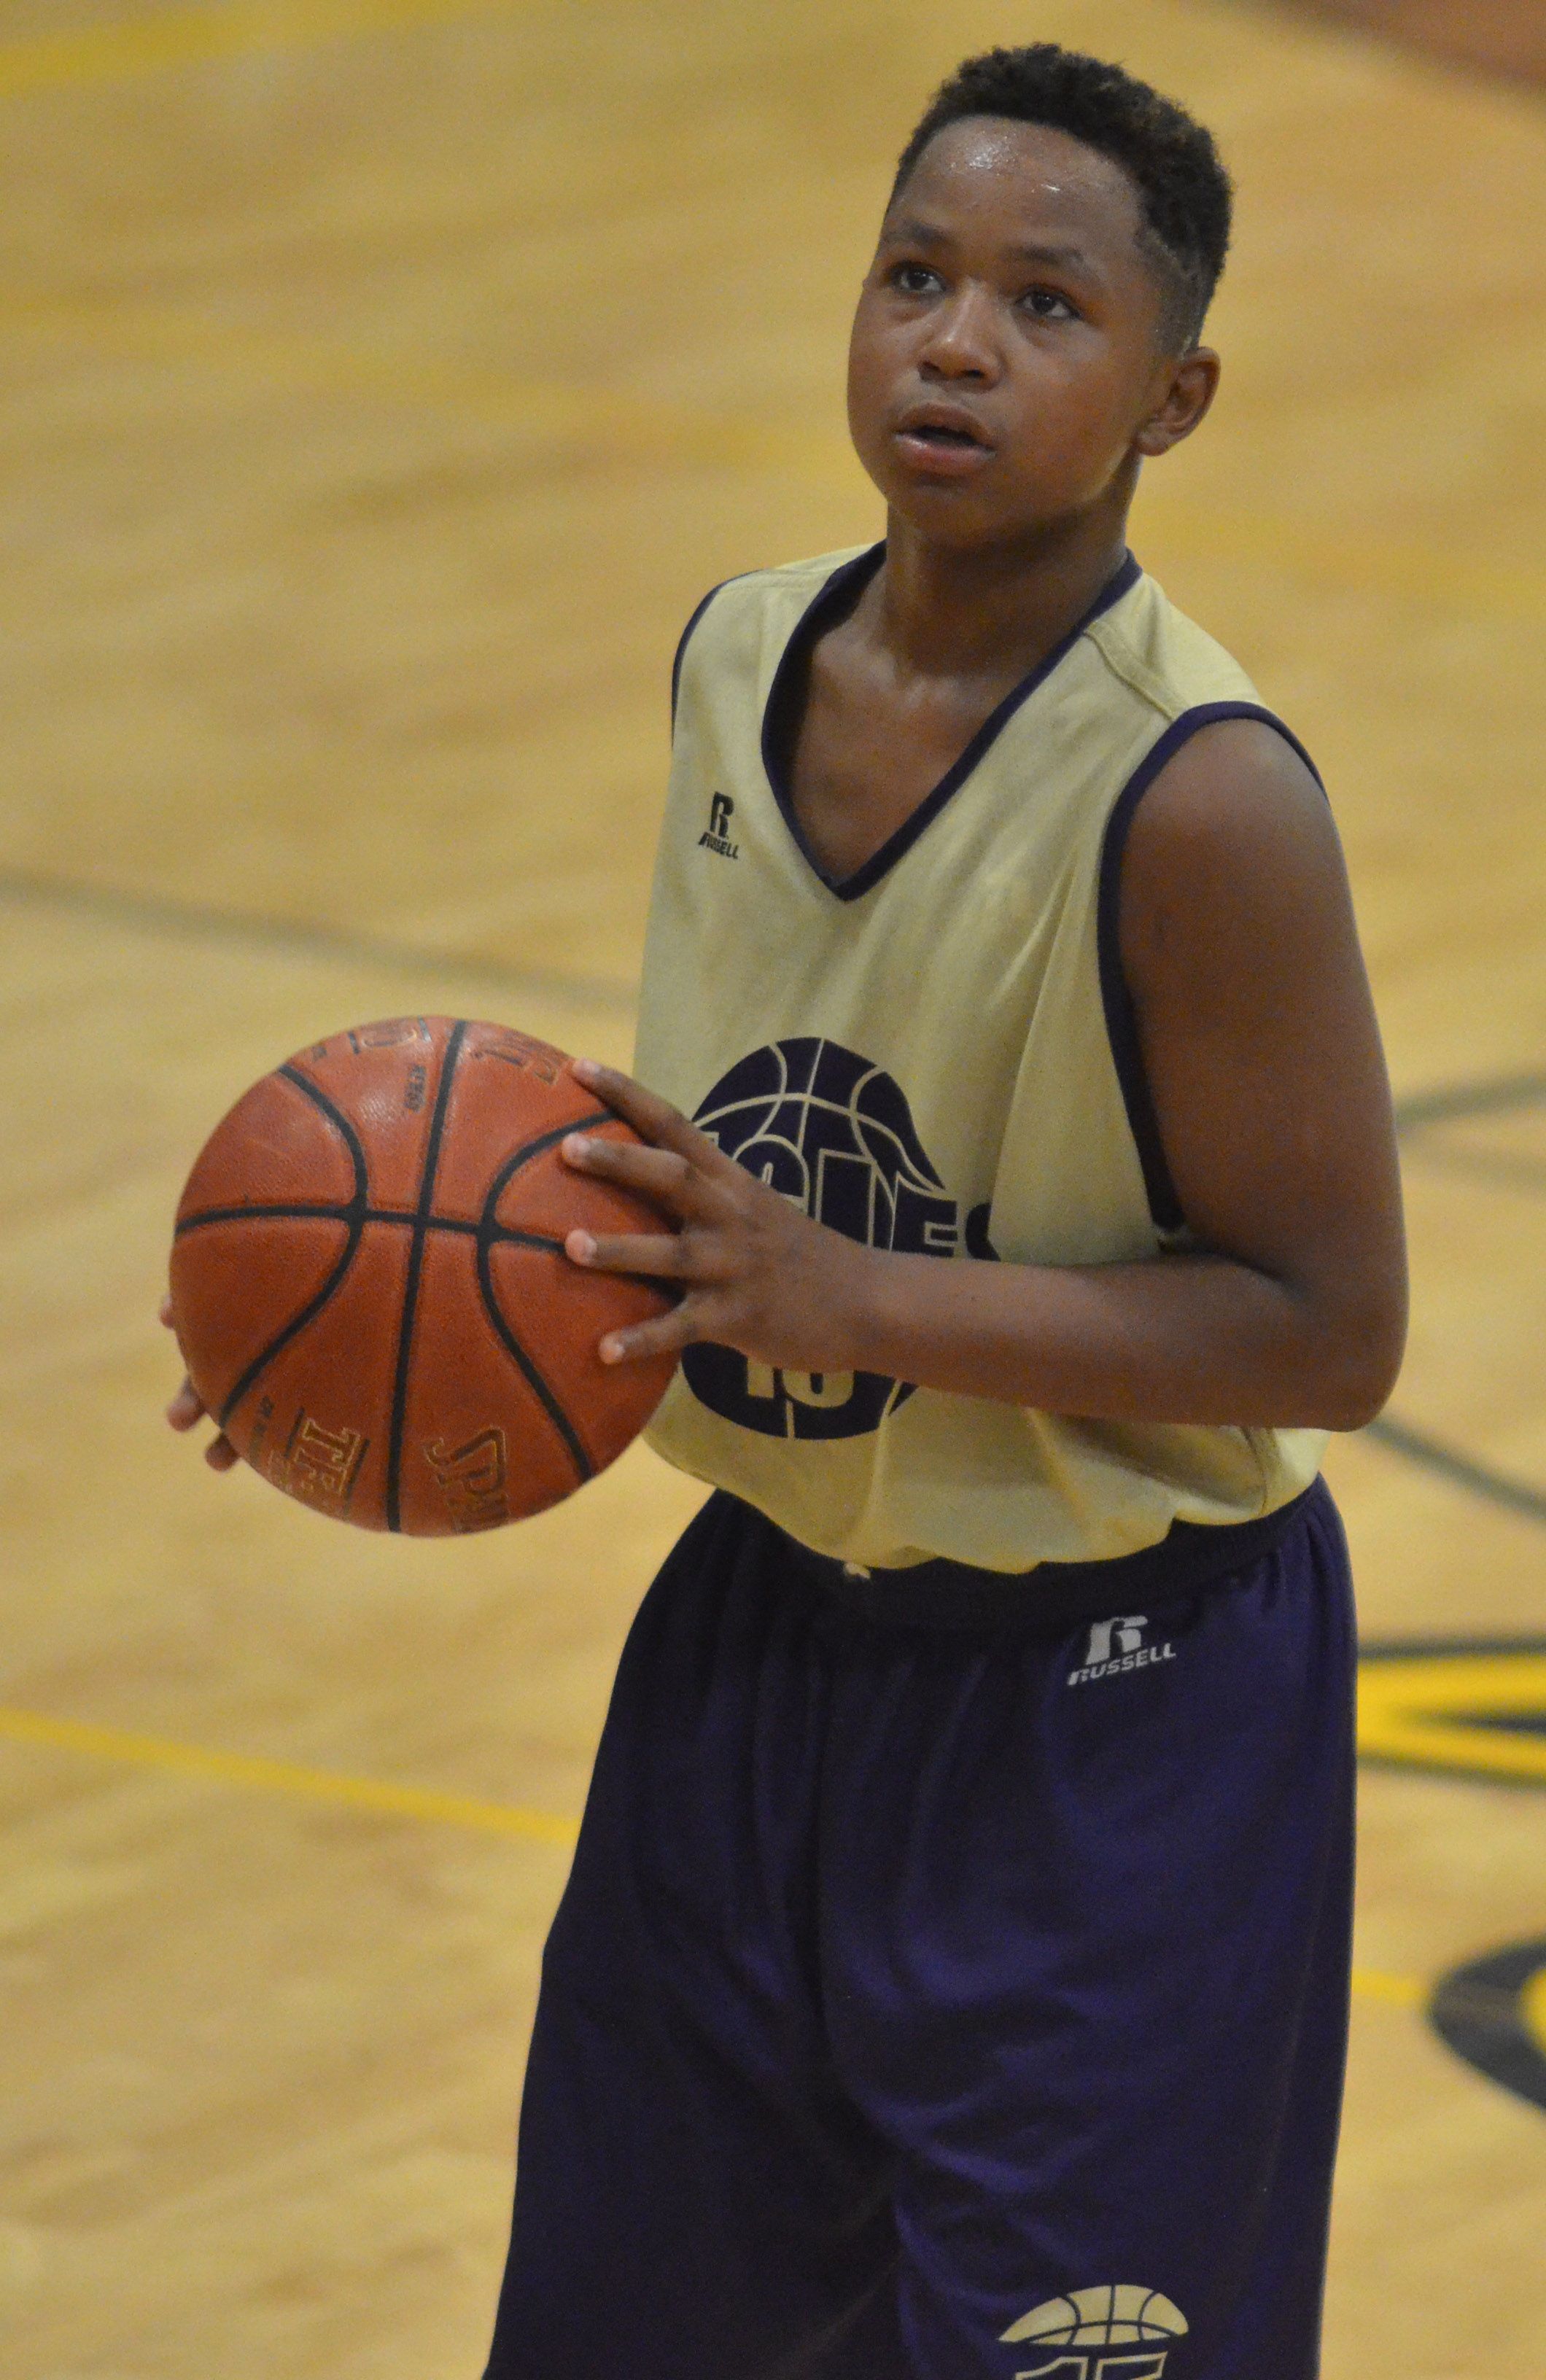 Campbellsville Middle School sixth-grader Deondre Weathers shoots the ball.